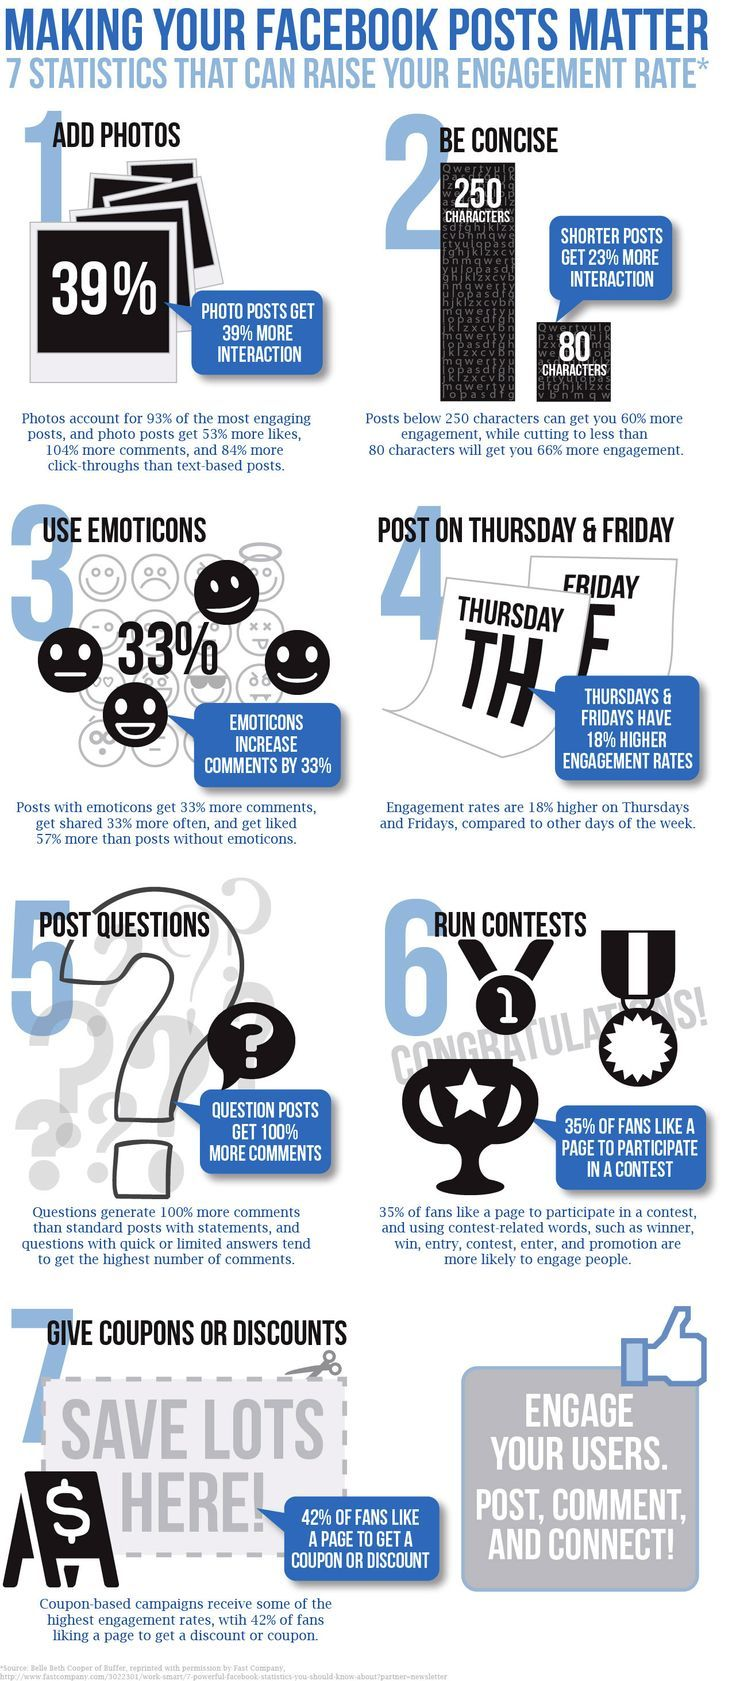 6 Ways to Increase Your Facebook Engagement [Infographic]